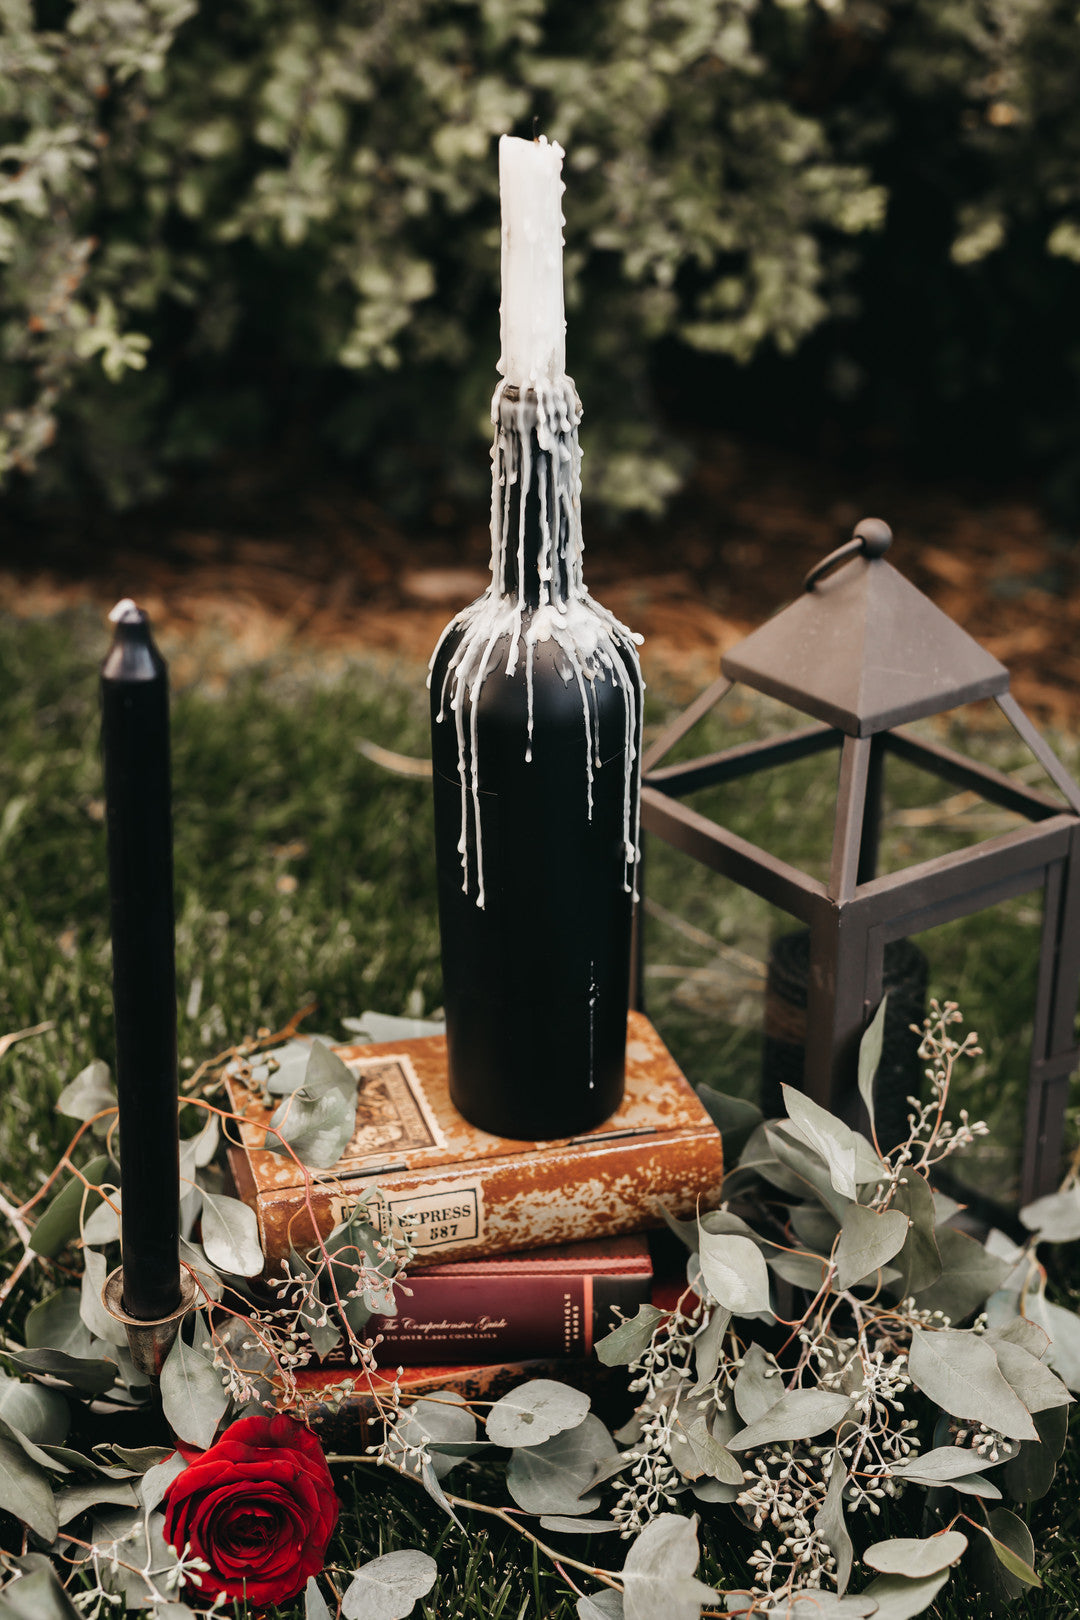 Candle And Wine Bottle Decor | Halloween Wedding | Kate Aspen